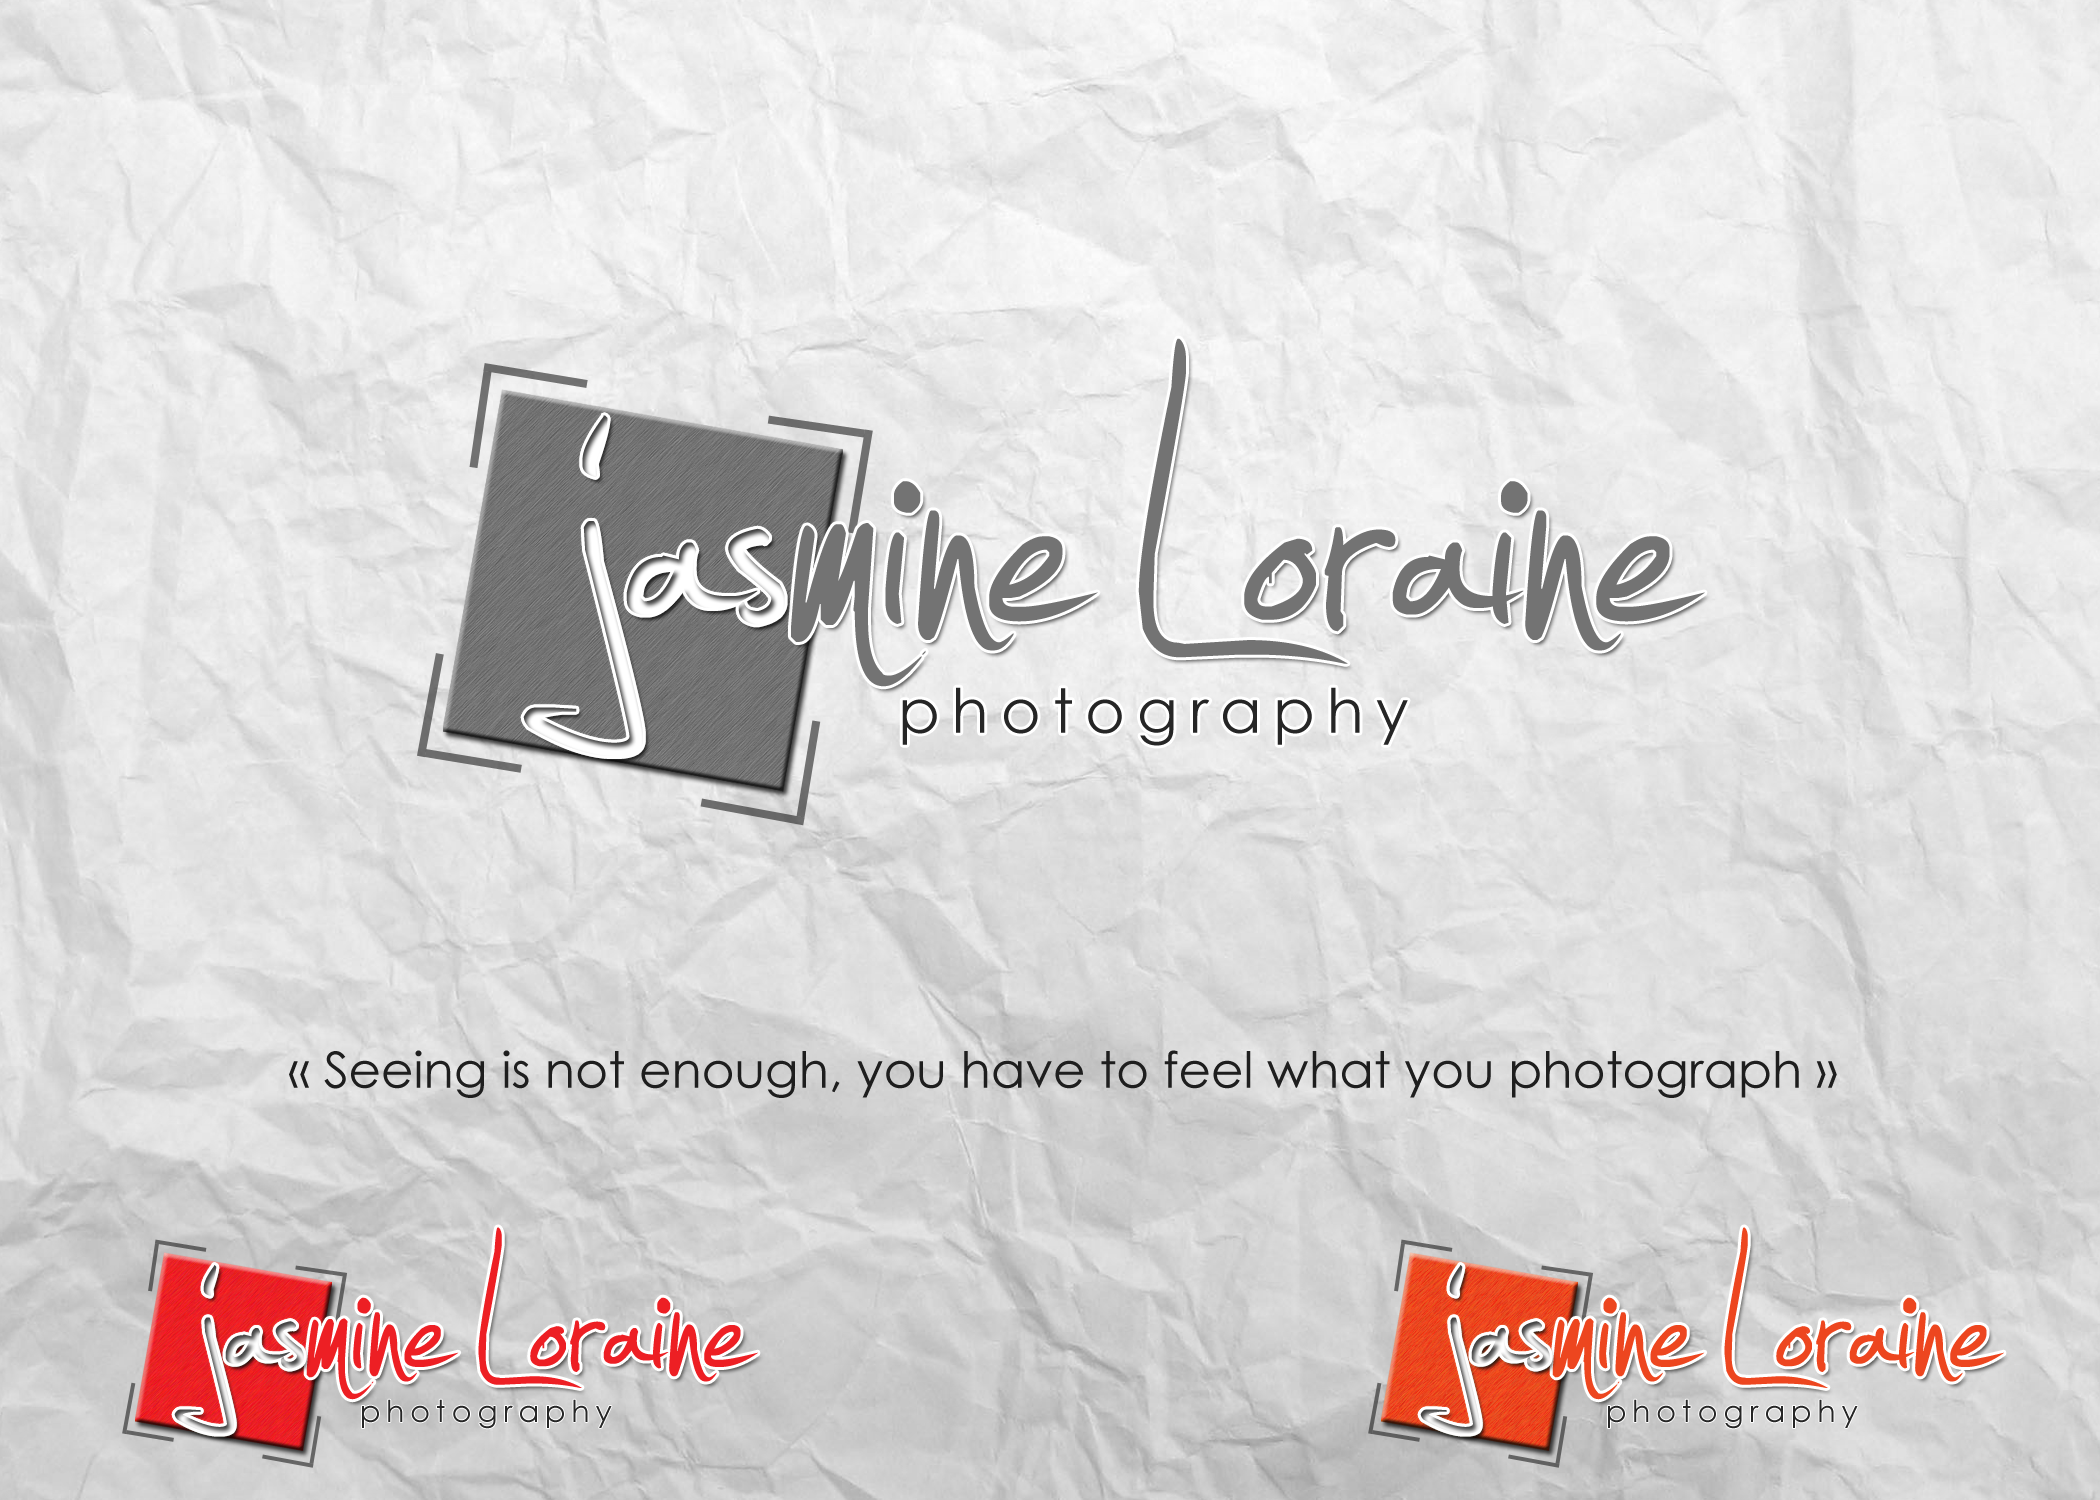 jasmine loraine logo by kbkb143 on deviantart